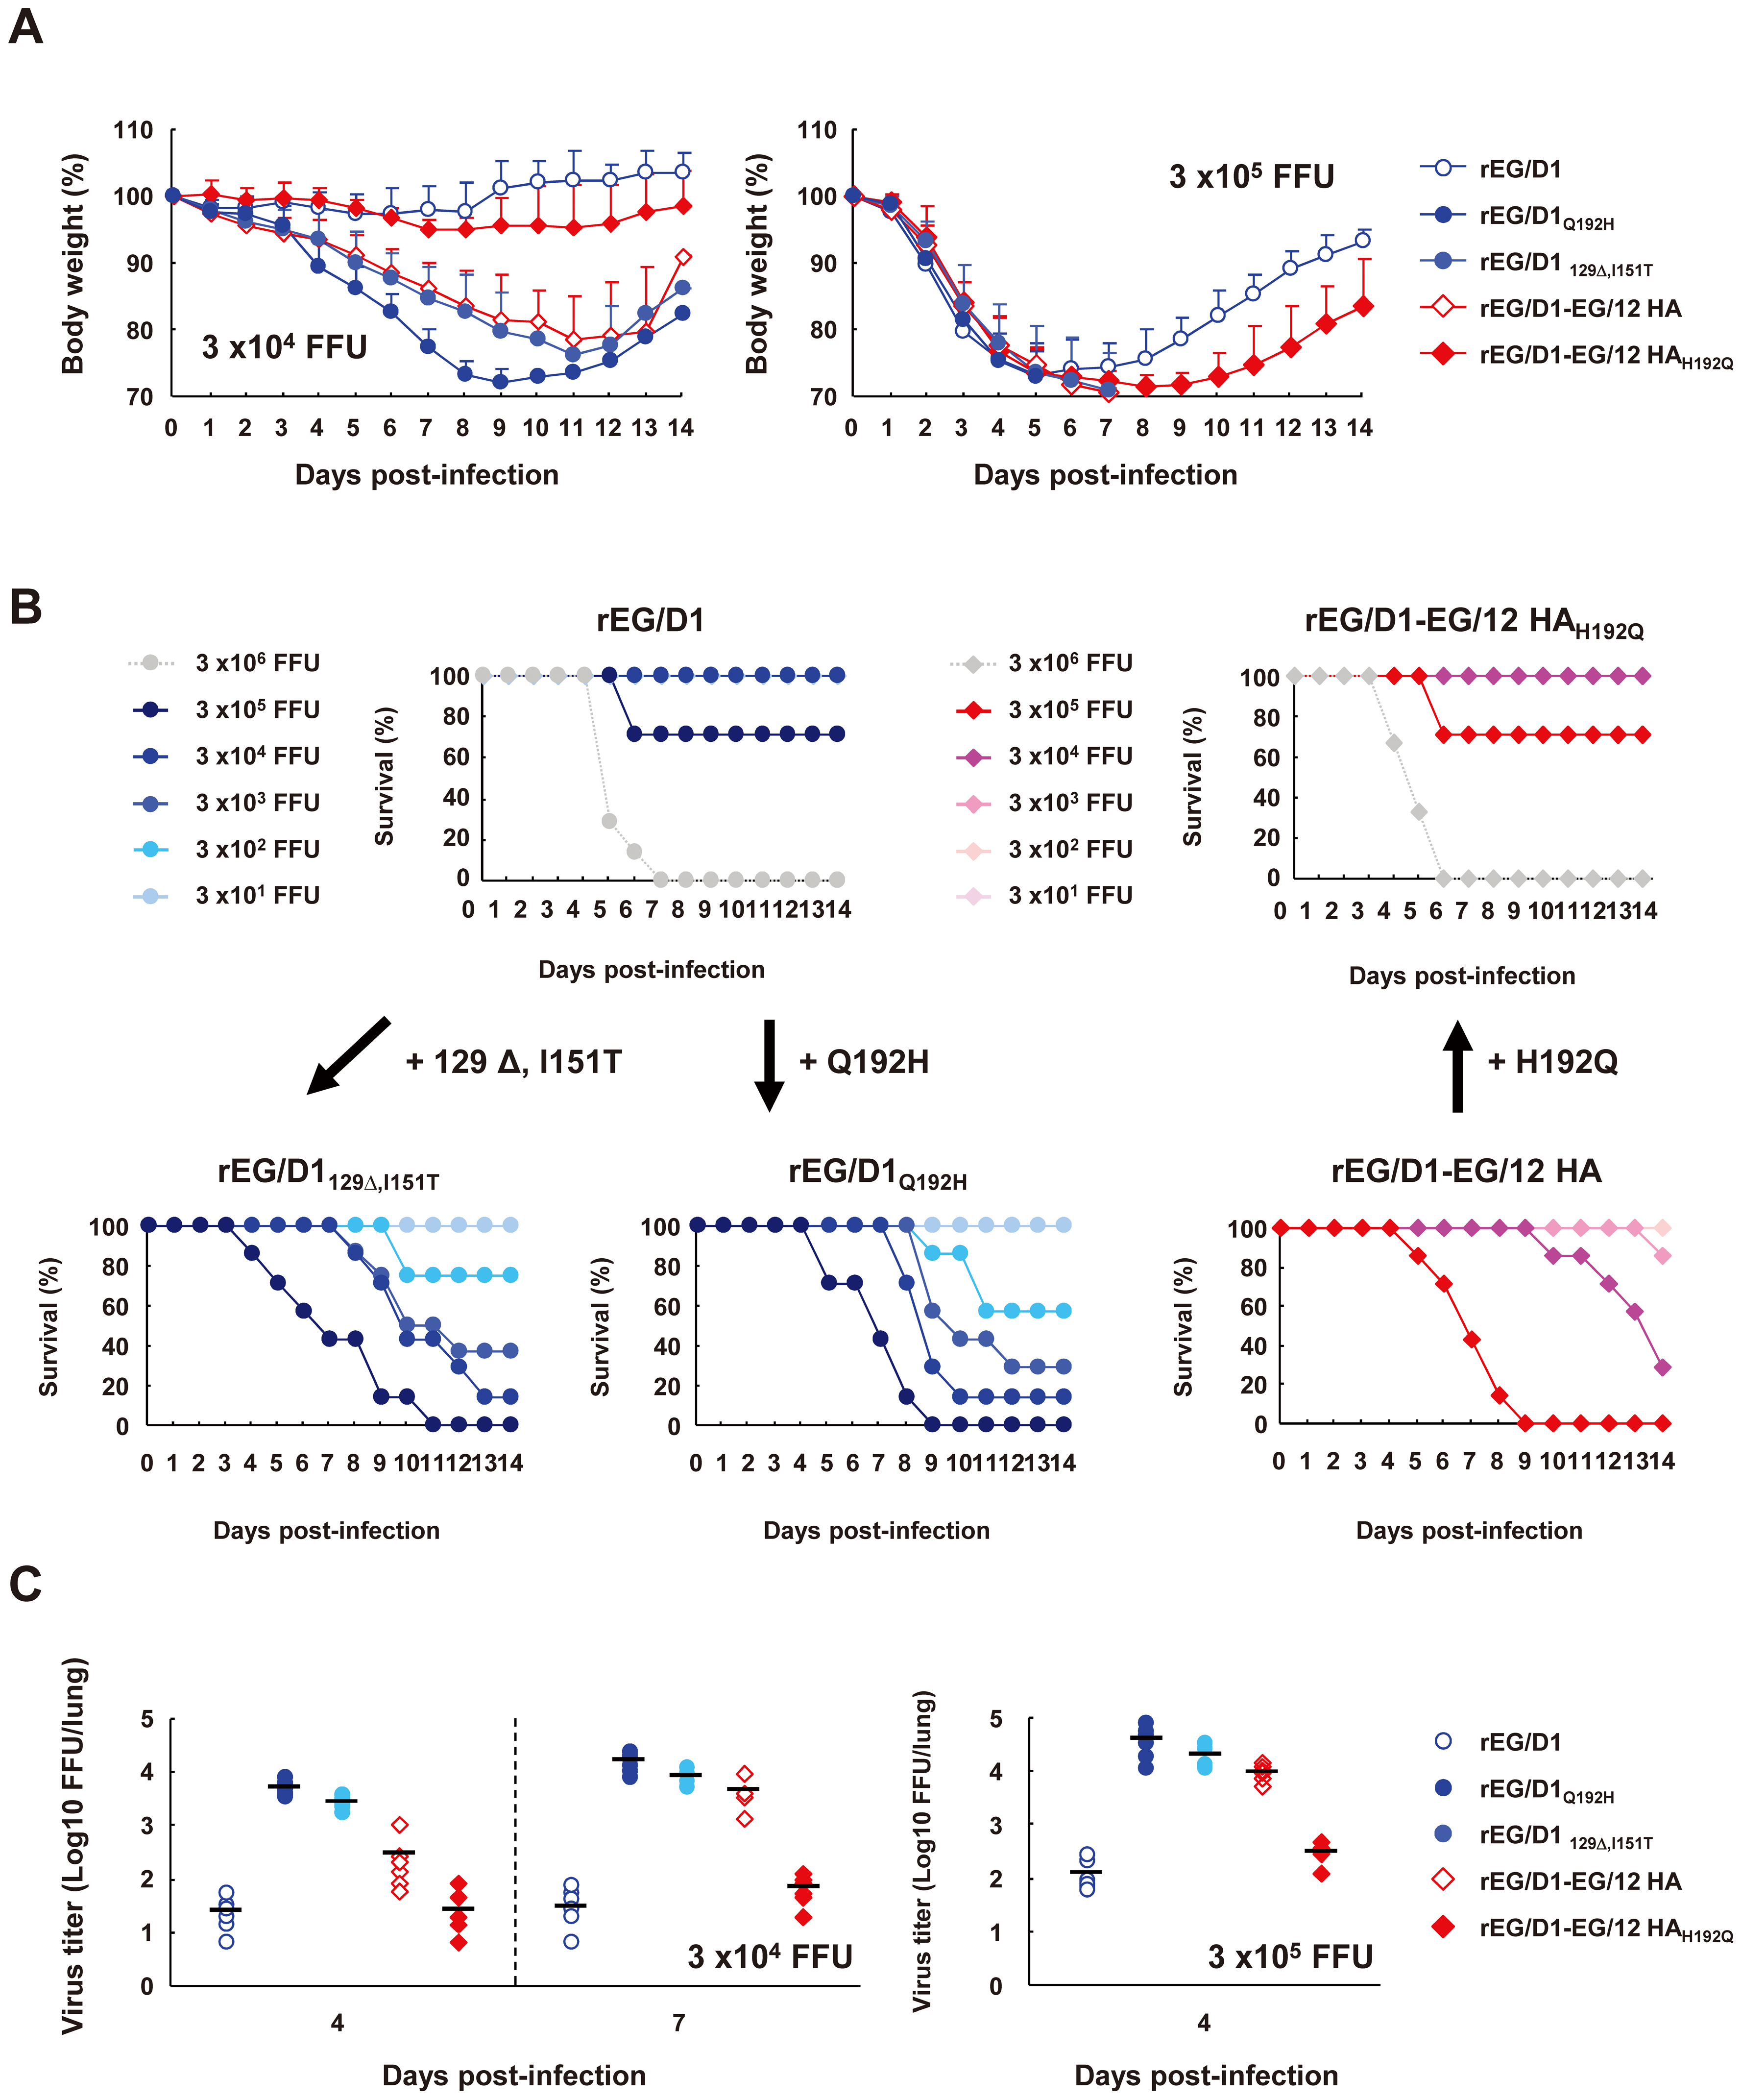 Mortality and weight loss of mice infected with rEG/D1 viruses.